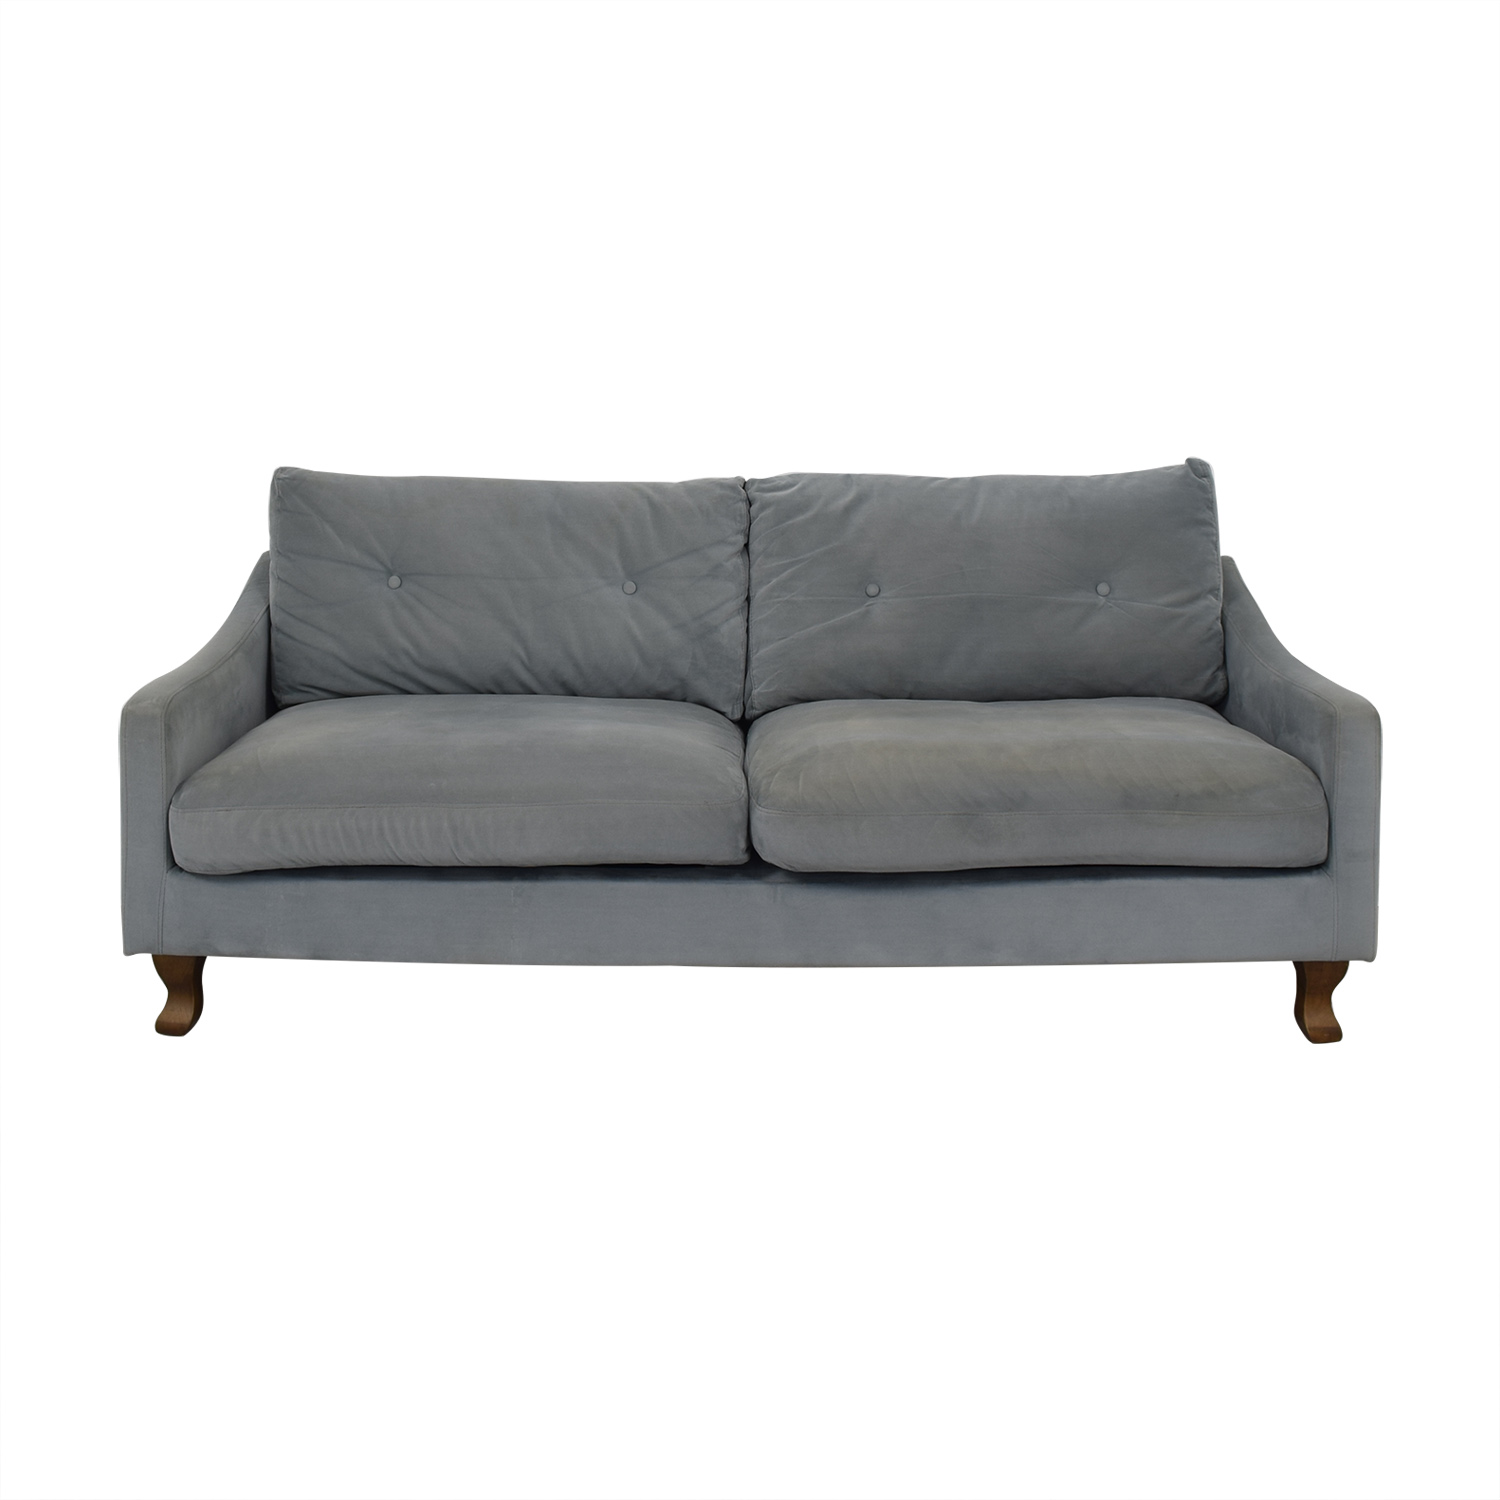 Urban Outfitters Urban Outfitters Two Cushion Sofa second hand